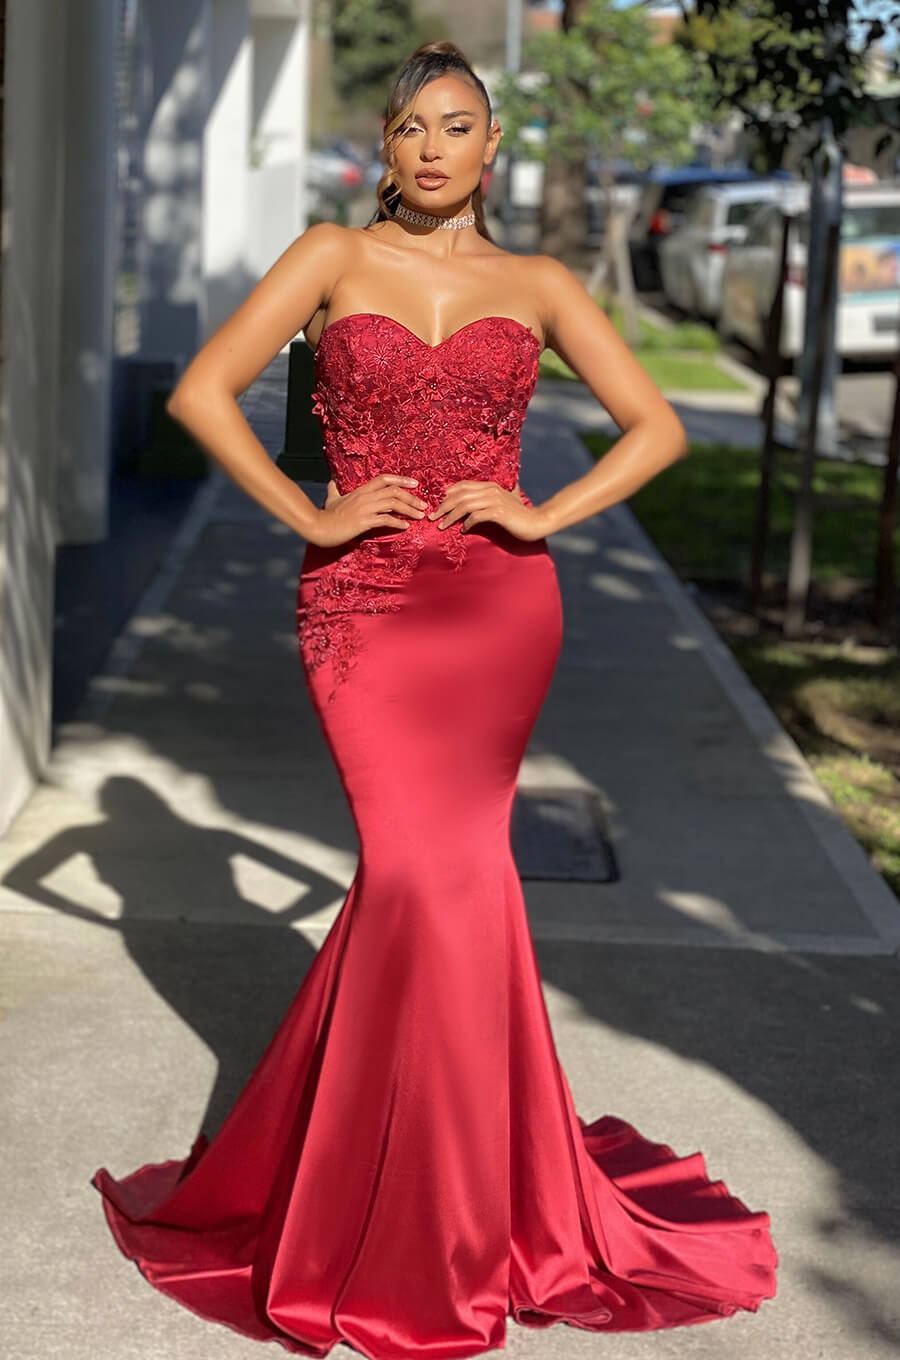 Fitted mermaid style gown with floral applique and sheer paneling